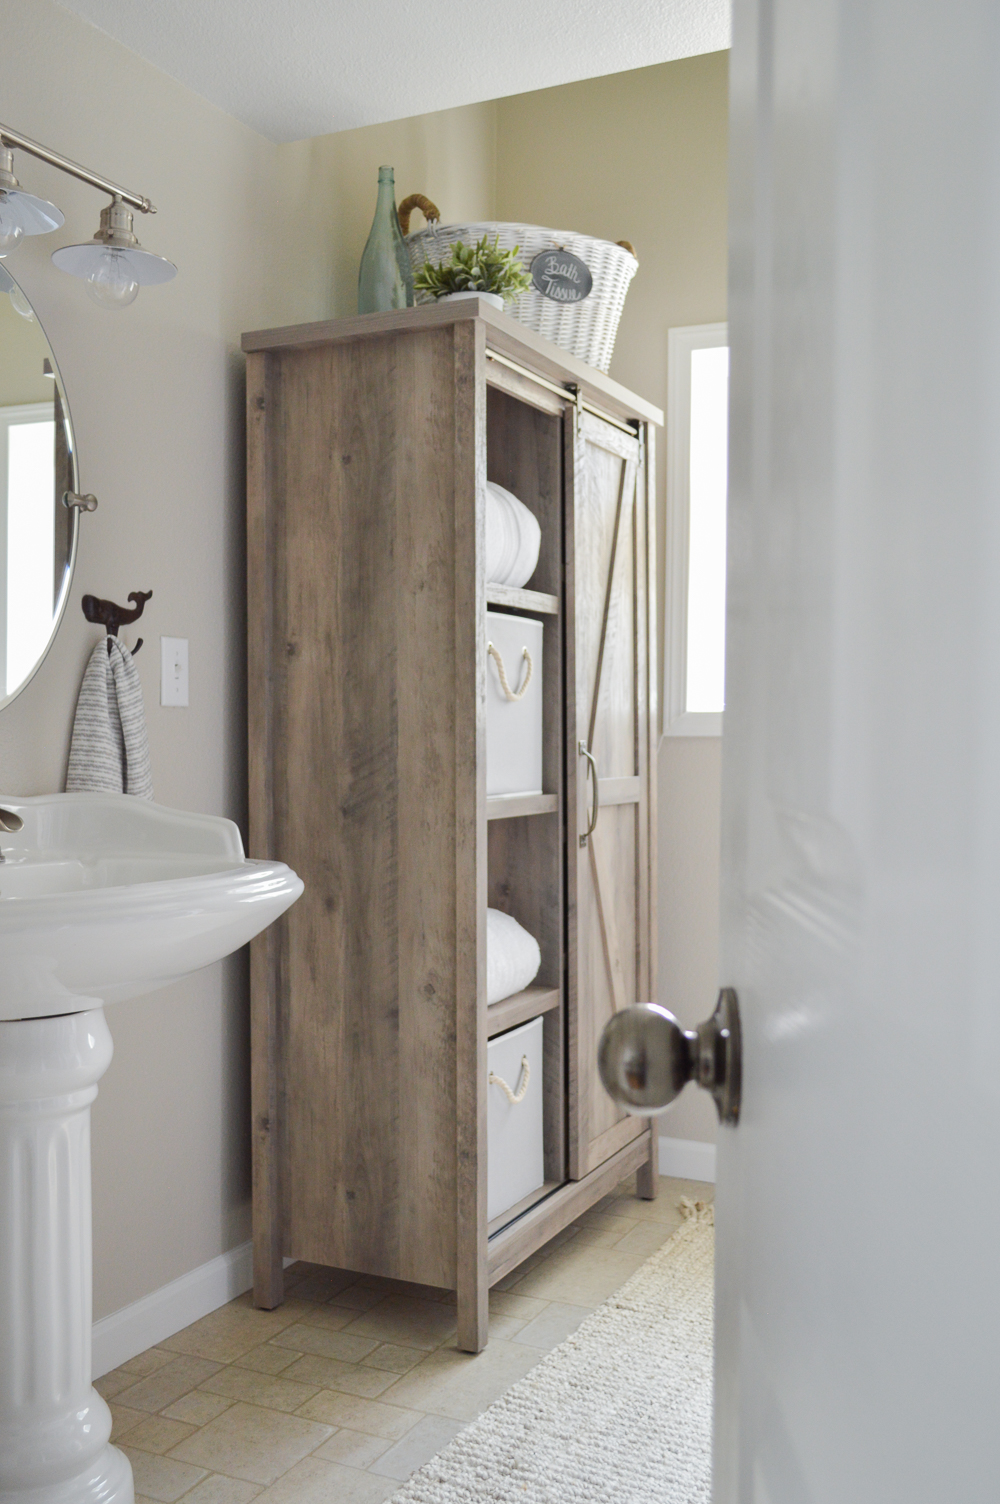 The Little Cottage Bathroom Makeover at Fox Hollow Cottage - Coastal cottage farmhouse blend with Better